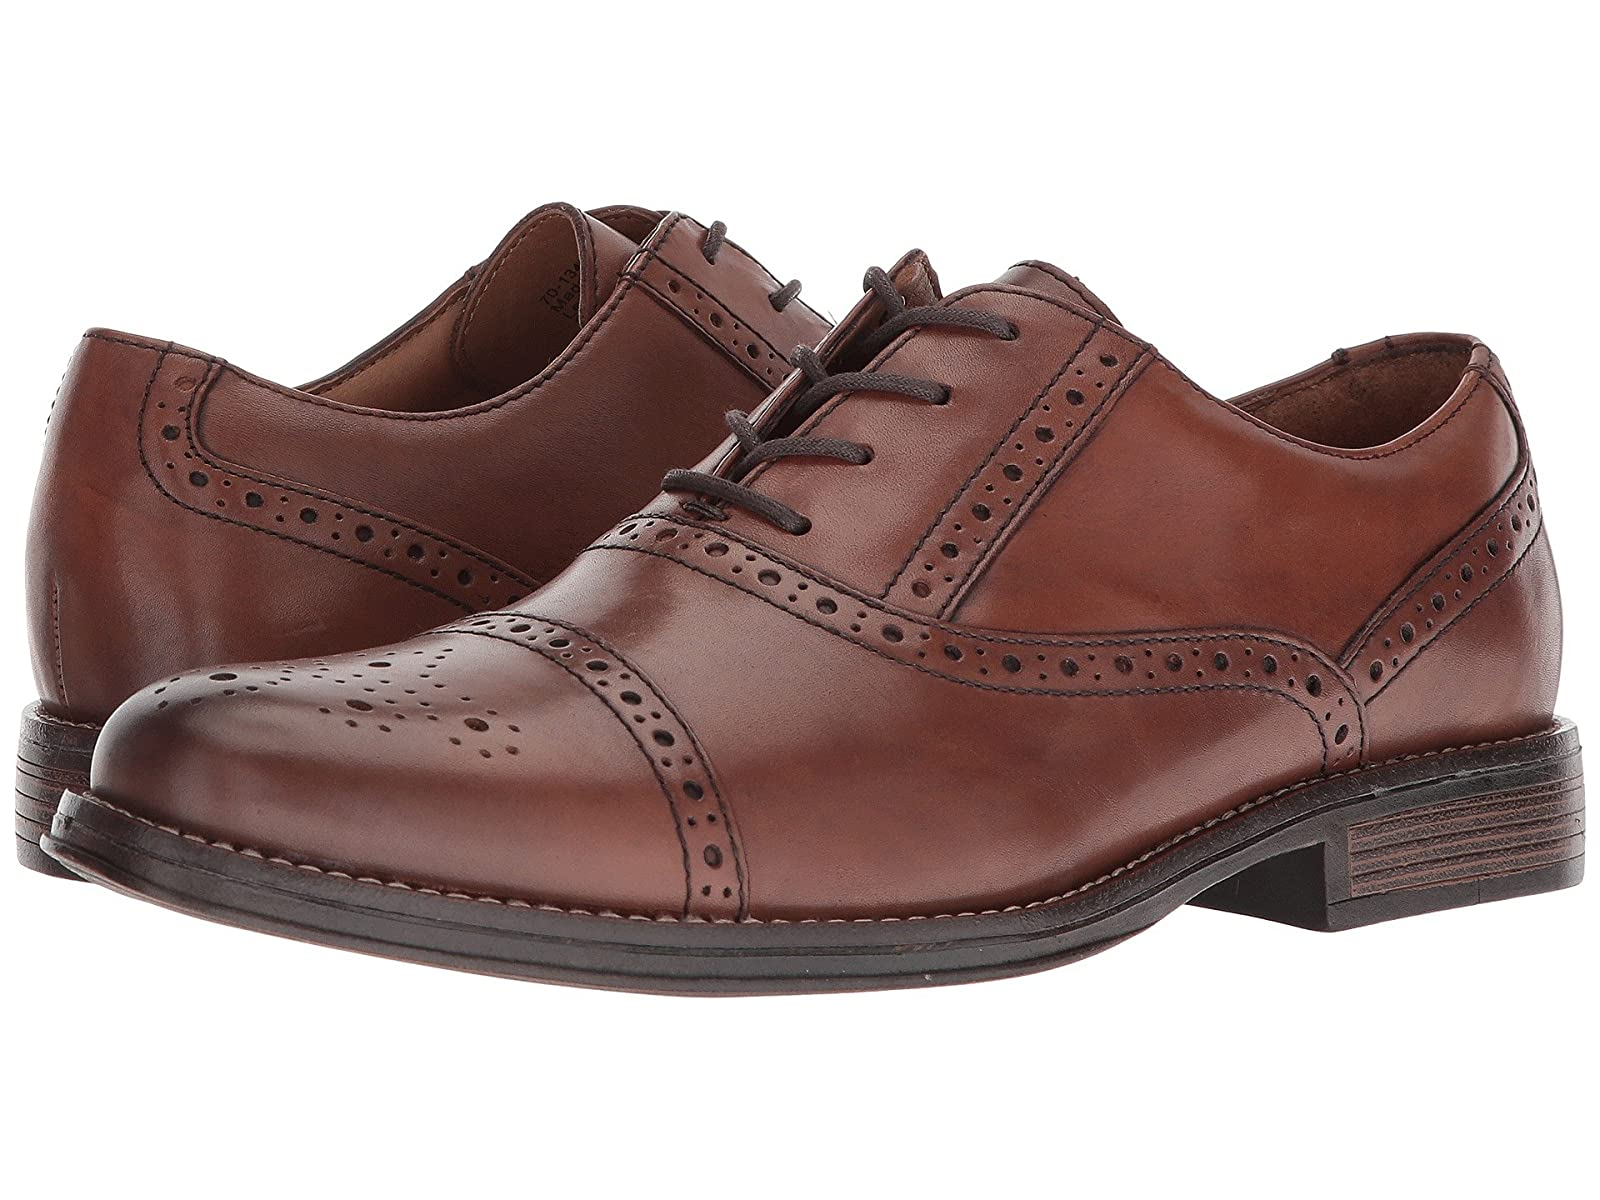 G.H. Bass & Co. WoolfCheap and distinctive eye-catching shoes